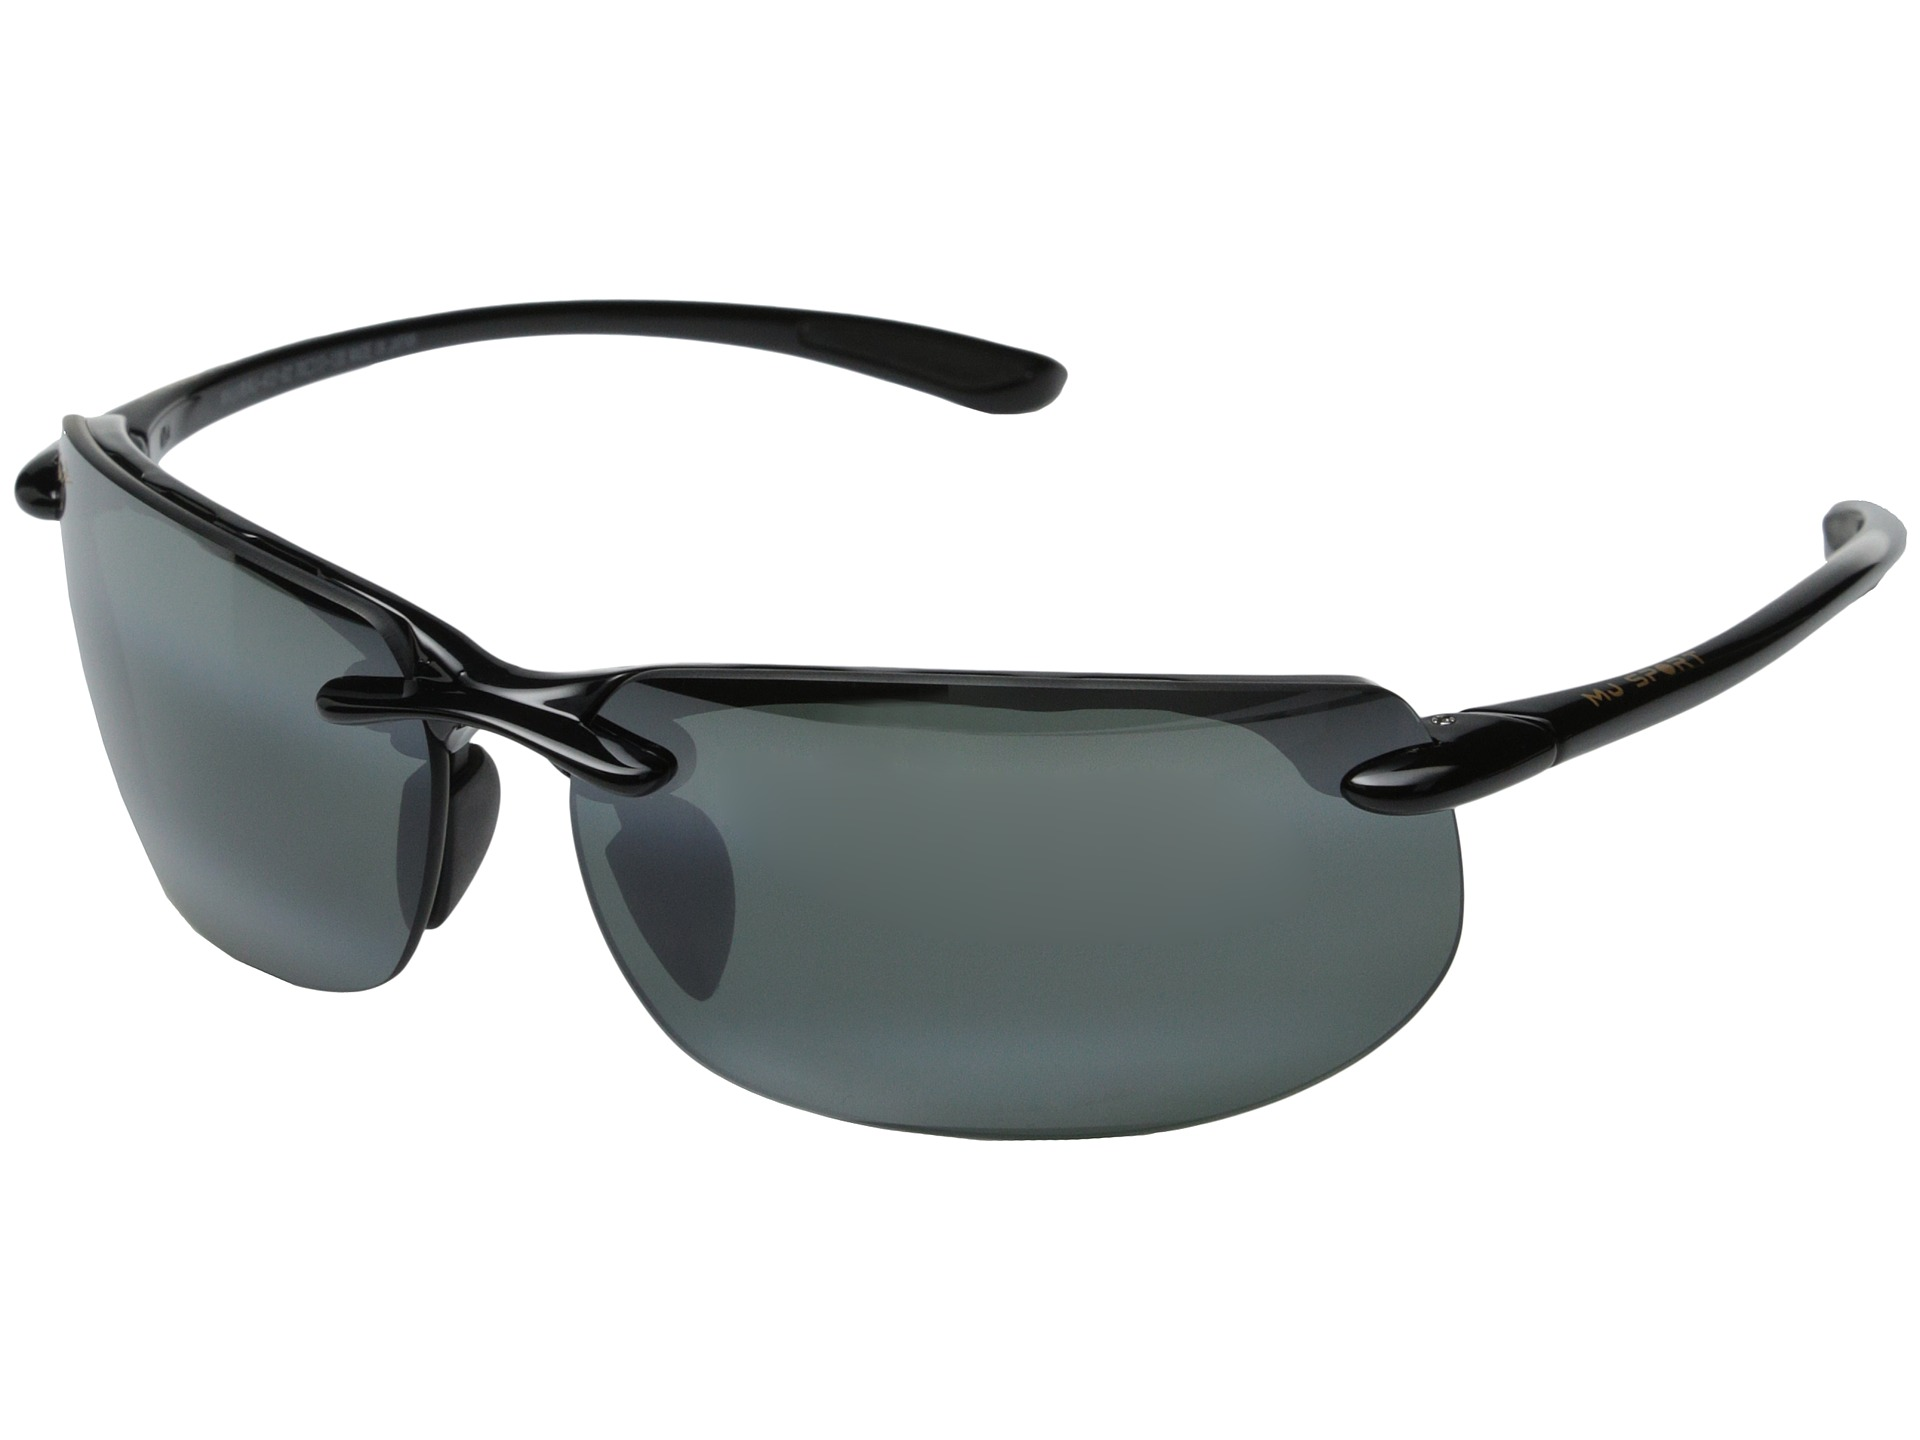 Stuccu: Best Deals on discount maui jim. Up To 70% offFree Shipping · Best Offers · Special Discounts · Compare PricesService catalog: Lowest Prices, Final Sales, Top Deals.